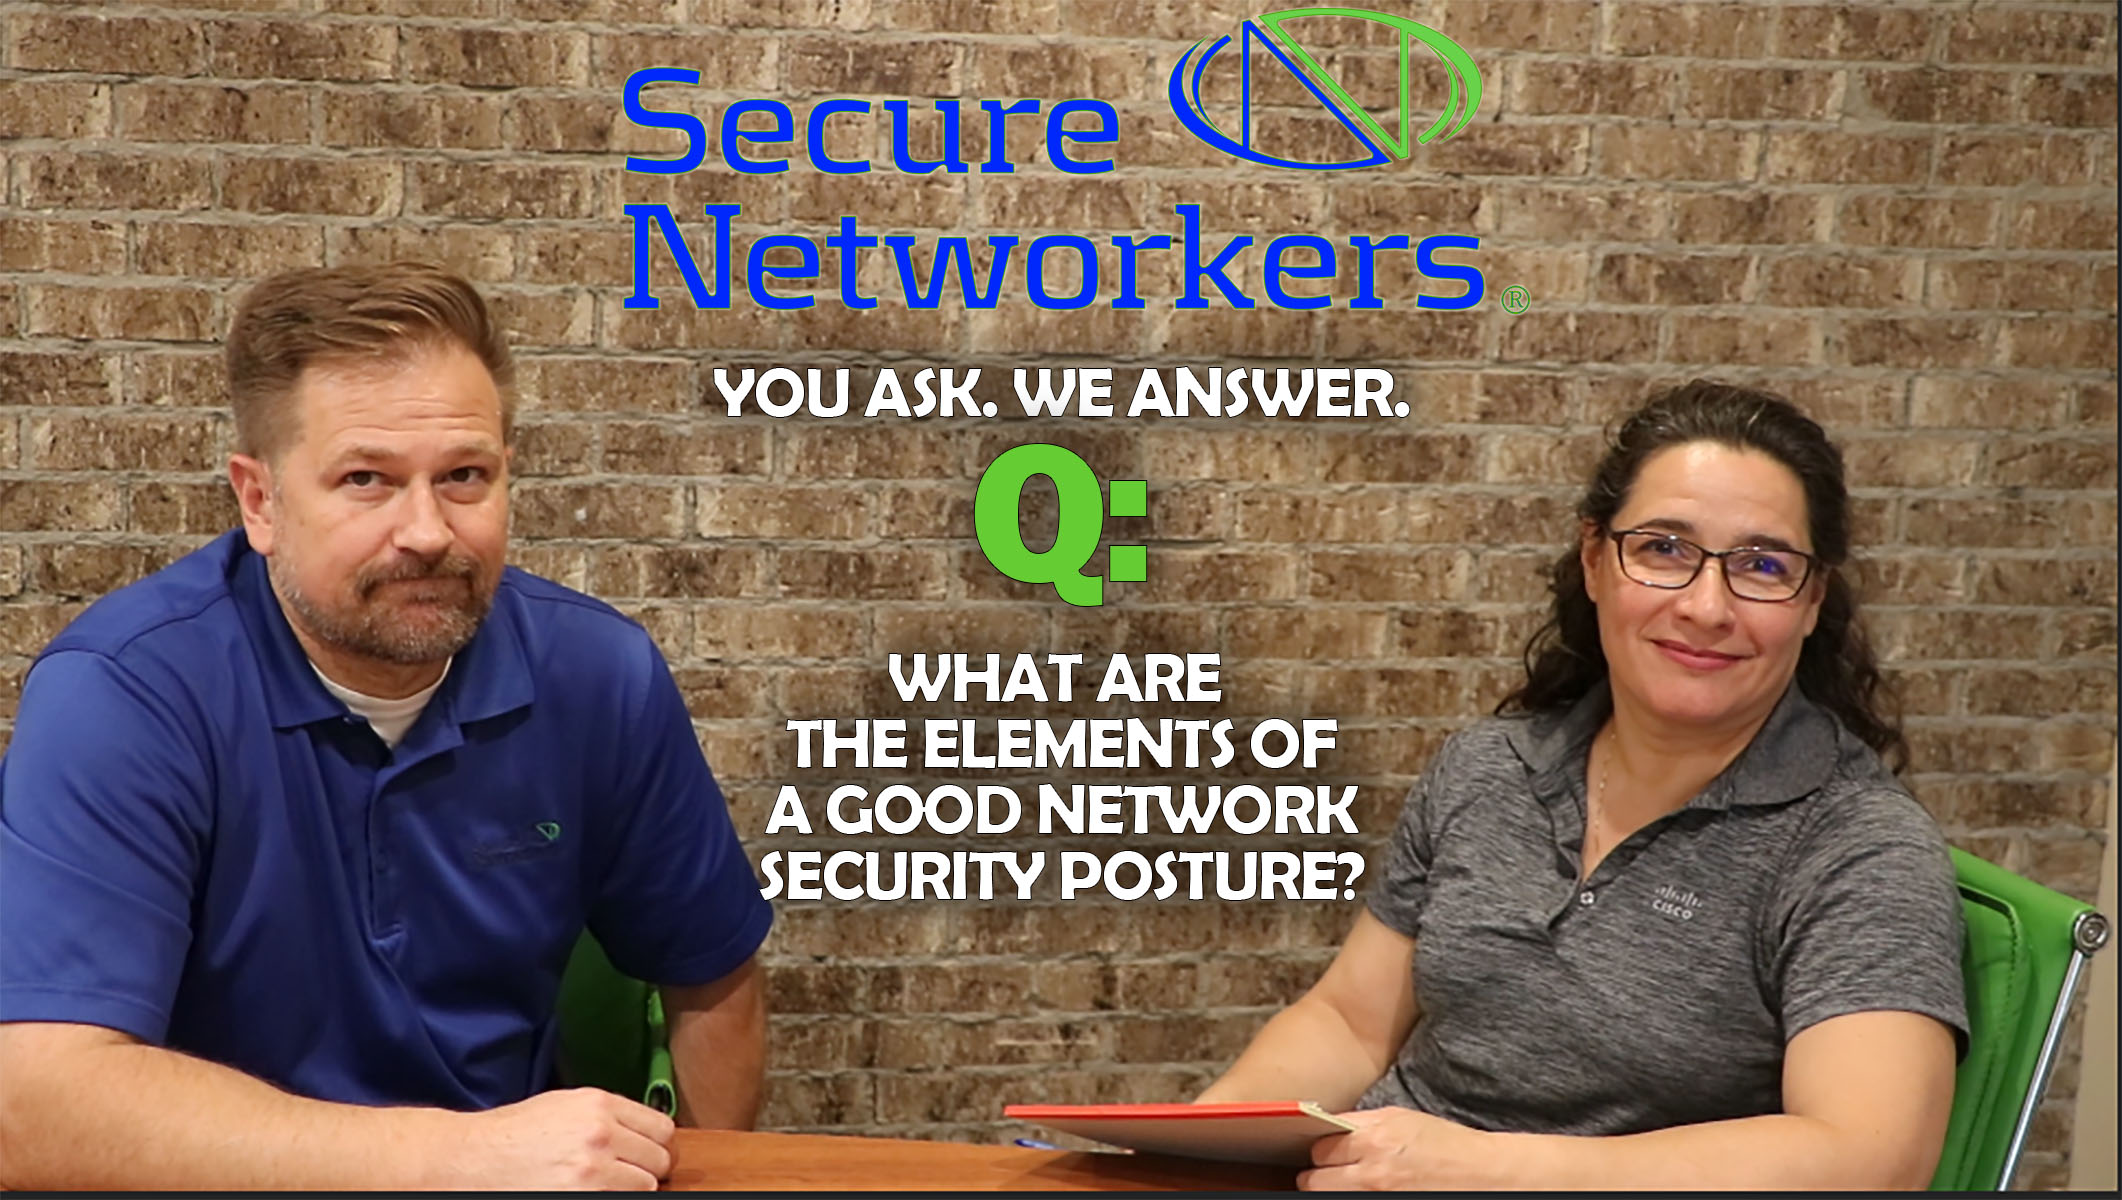 4 Elements of a Good Security Posture